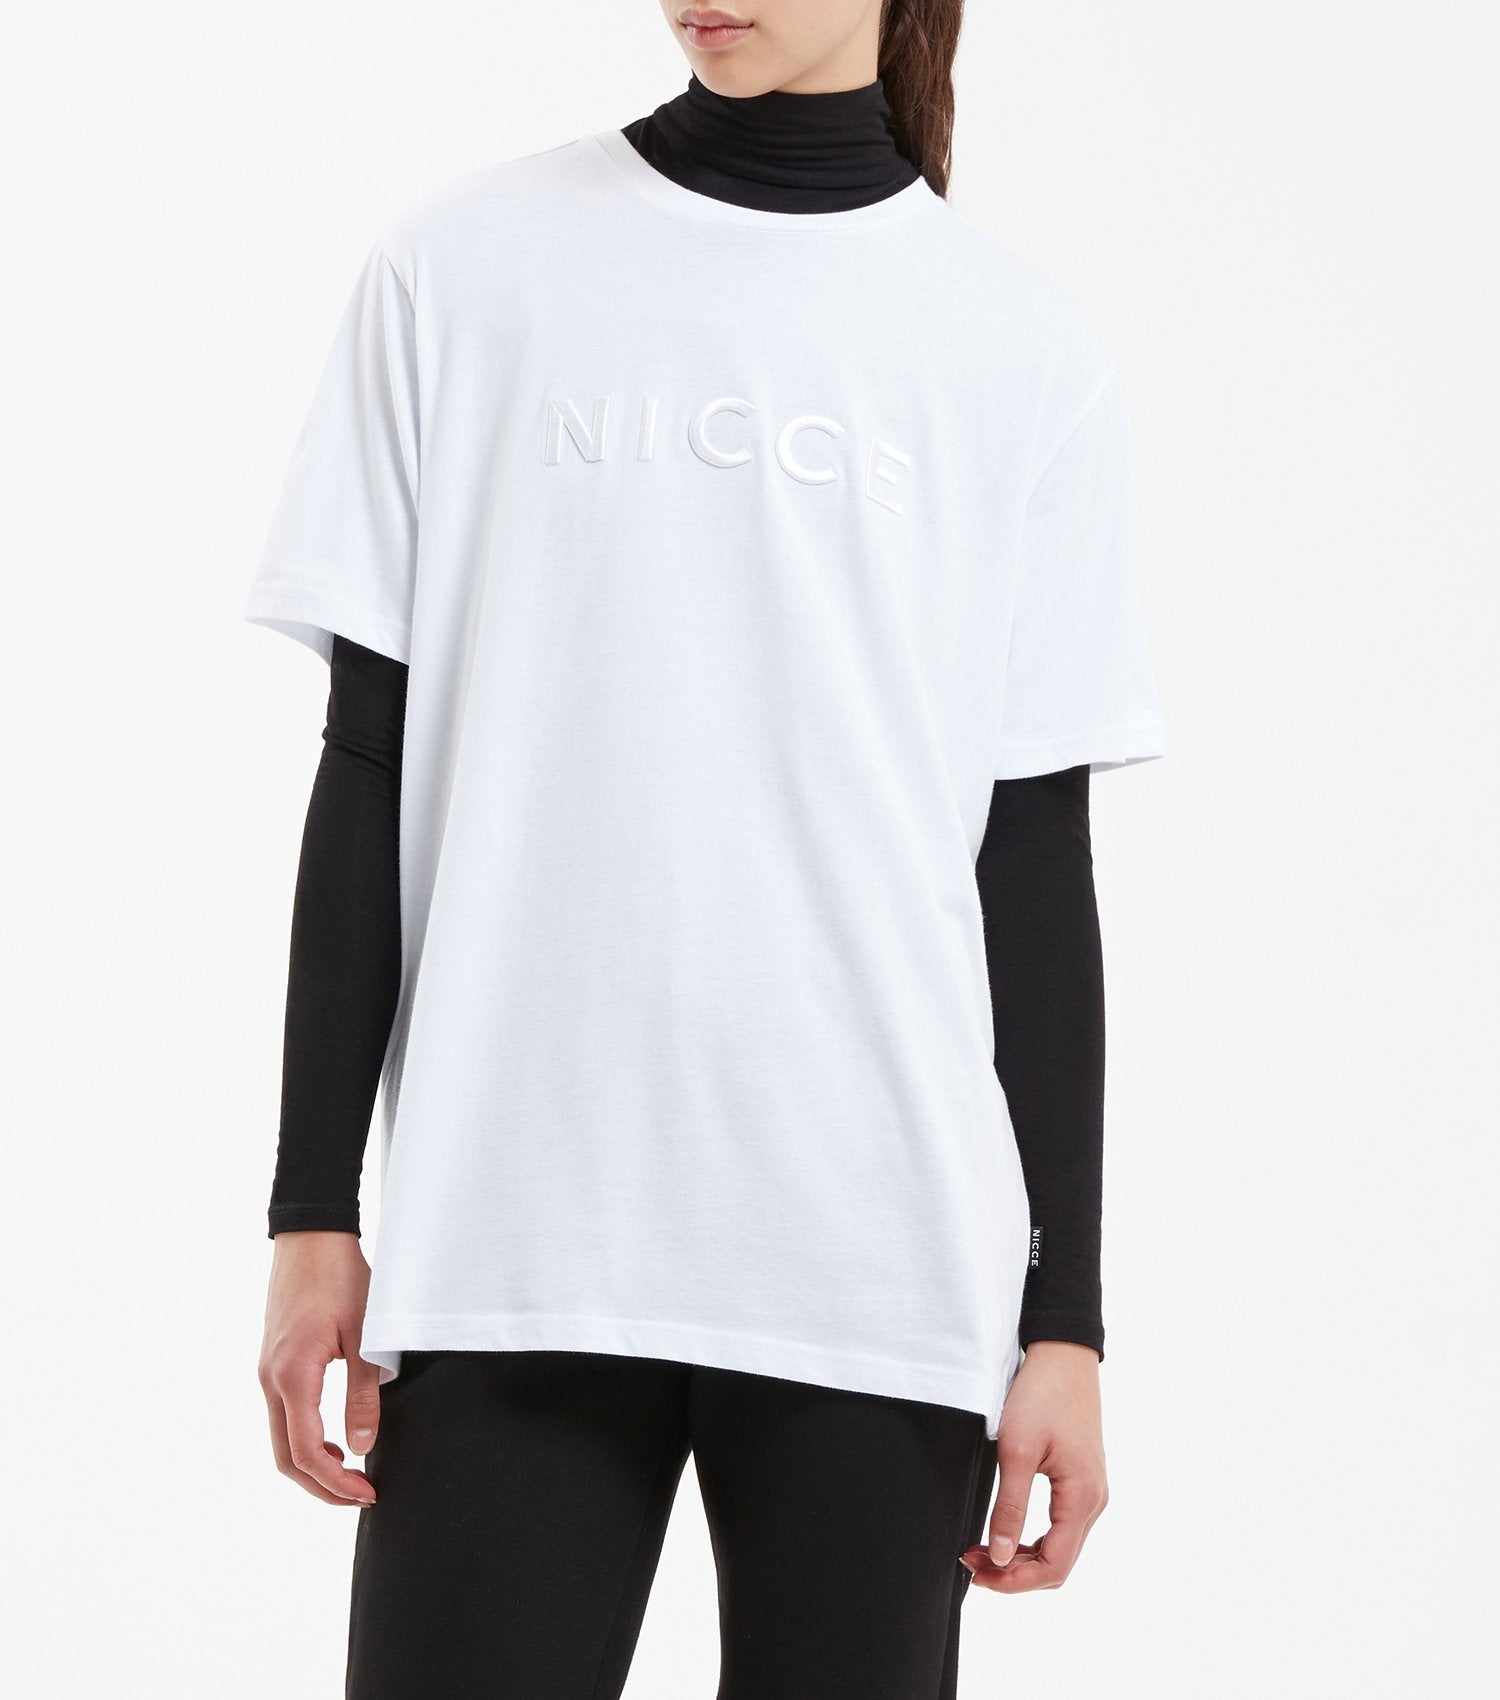 Nicce Contemporary Casualwear Streetwear For Men And Women Coup Classic Short Pant Grey Featuring Crew Neck Sleeves With Raised Embroidered